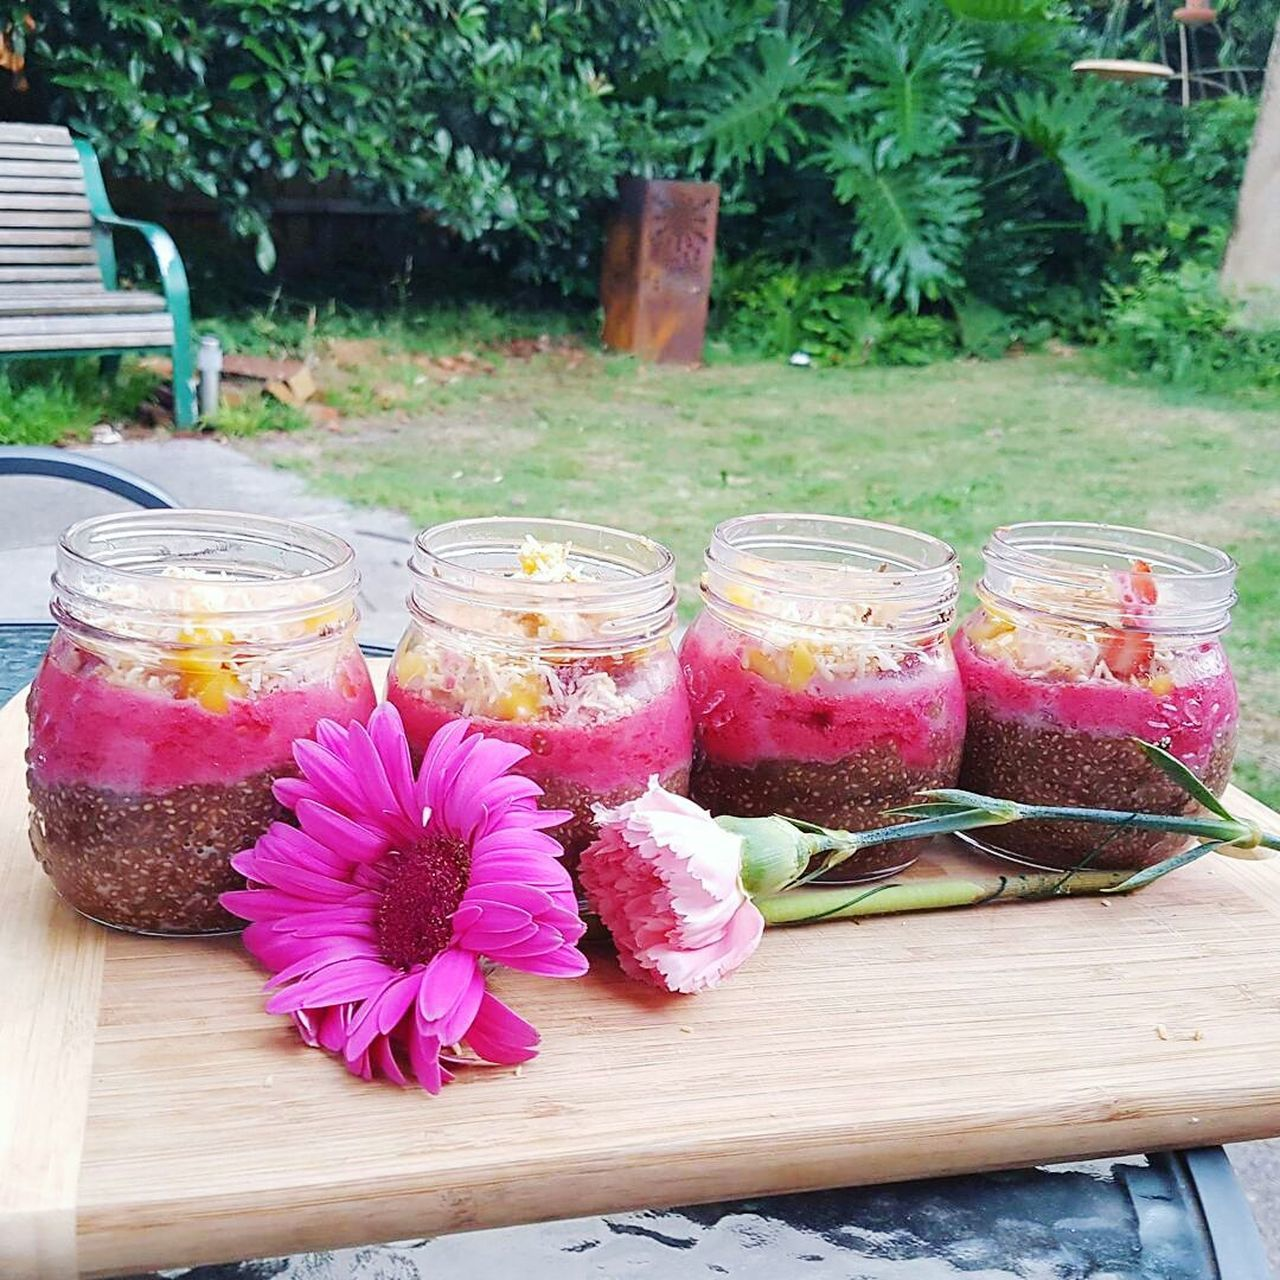 Flower Pink Color Plant Drinking Glass Summer Table Drink No People Flower Arrangement Outdoors Nature Freshness Day Flower Head Food Foodporn Foodphotography Chia Chia Seeds Chia Pudding Healthy Eating Healthy Dessert Sugar Free